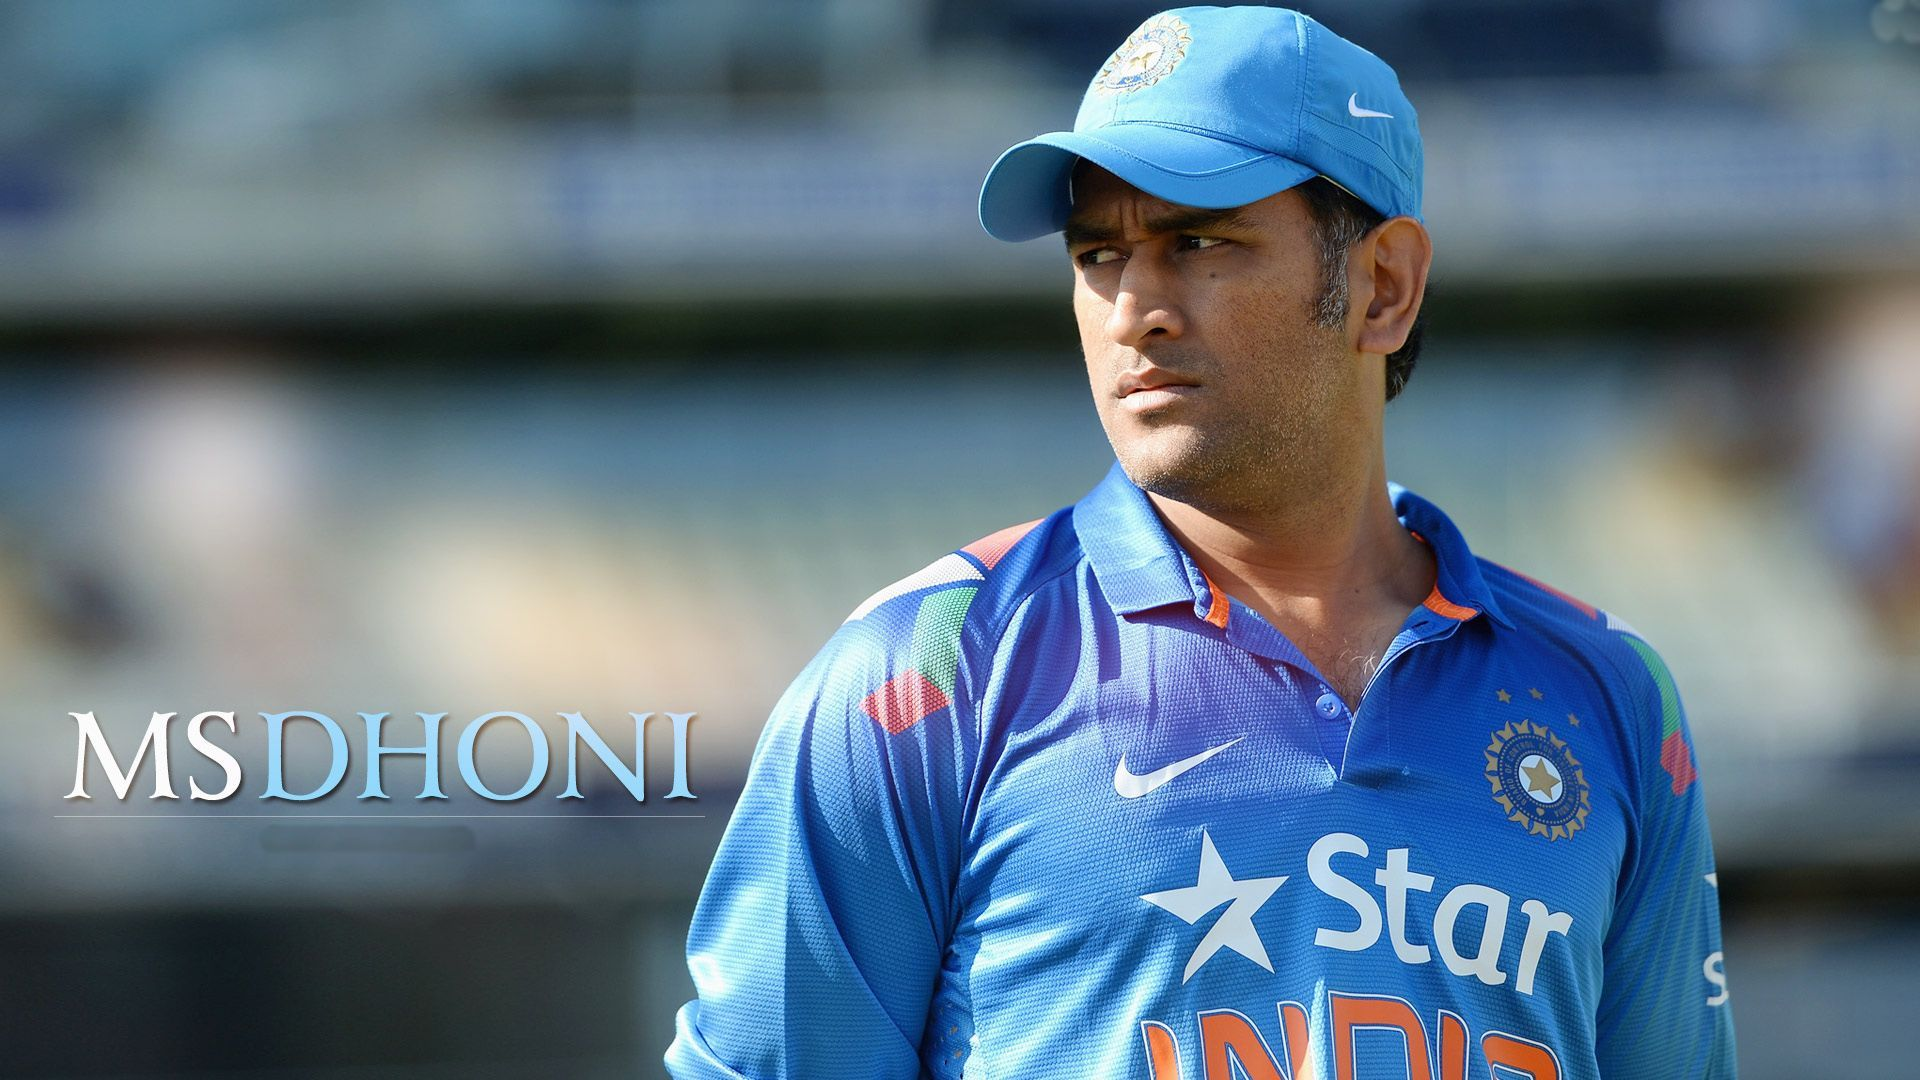 Mahendra Singh Dhoni Wallpapers Top Free Mahendra Singh Dhoni Backgrounds Wallpaperaccess